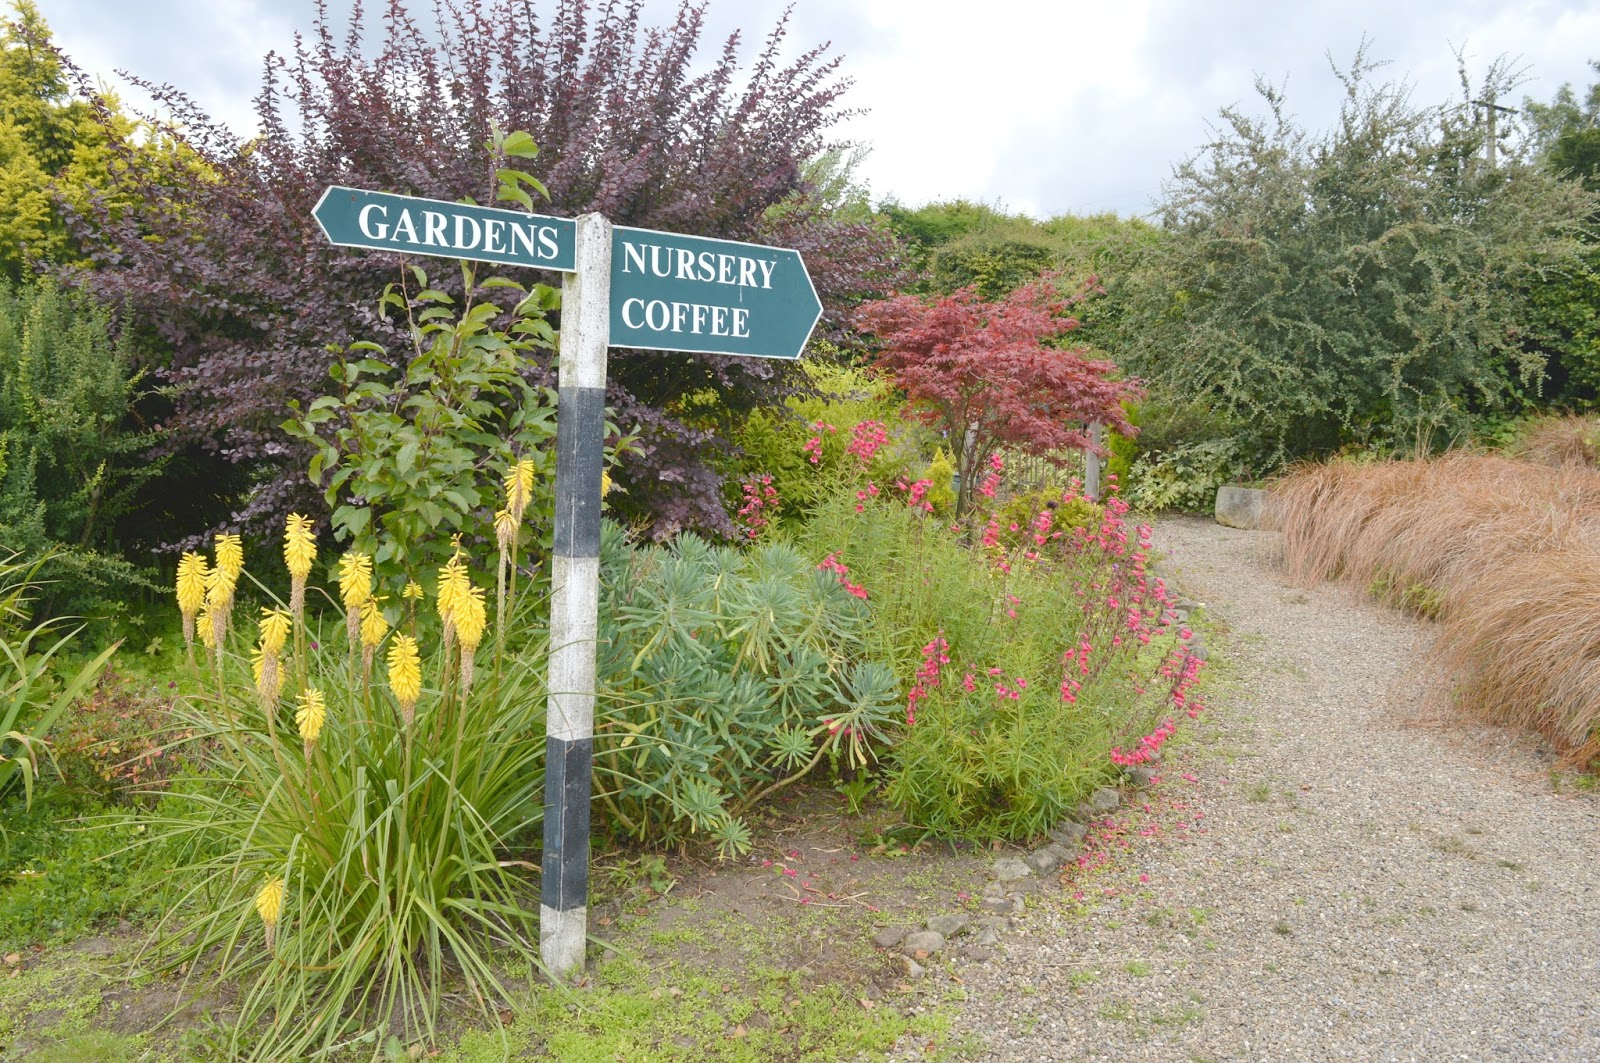 Gateshead's Great Outdoors - Birkheads Secret Gardens Nursery and Coffee Shop